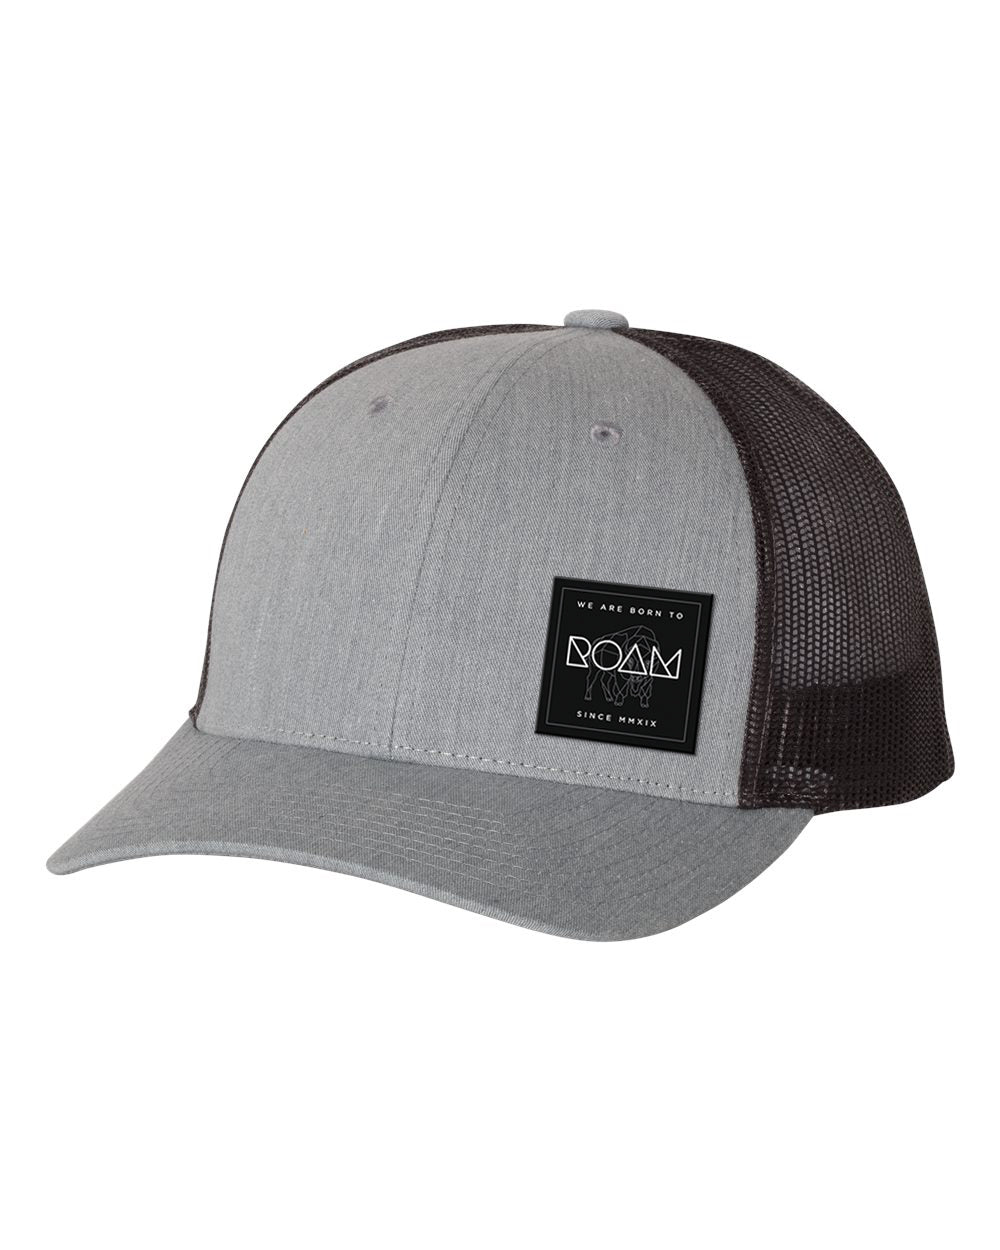 Mosaic Overlay Patch Snapback - Heather Grey/Dark Charcoal - Front